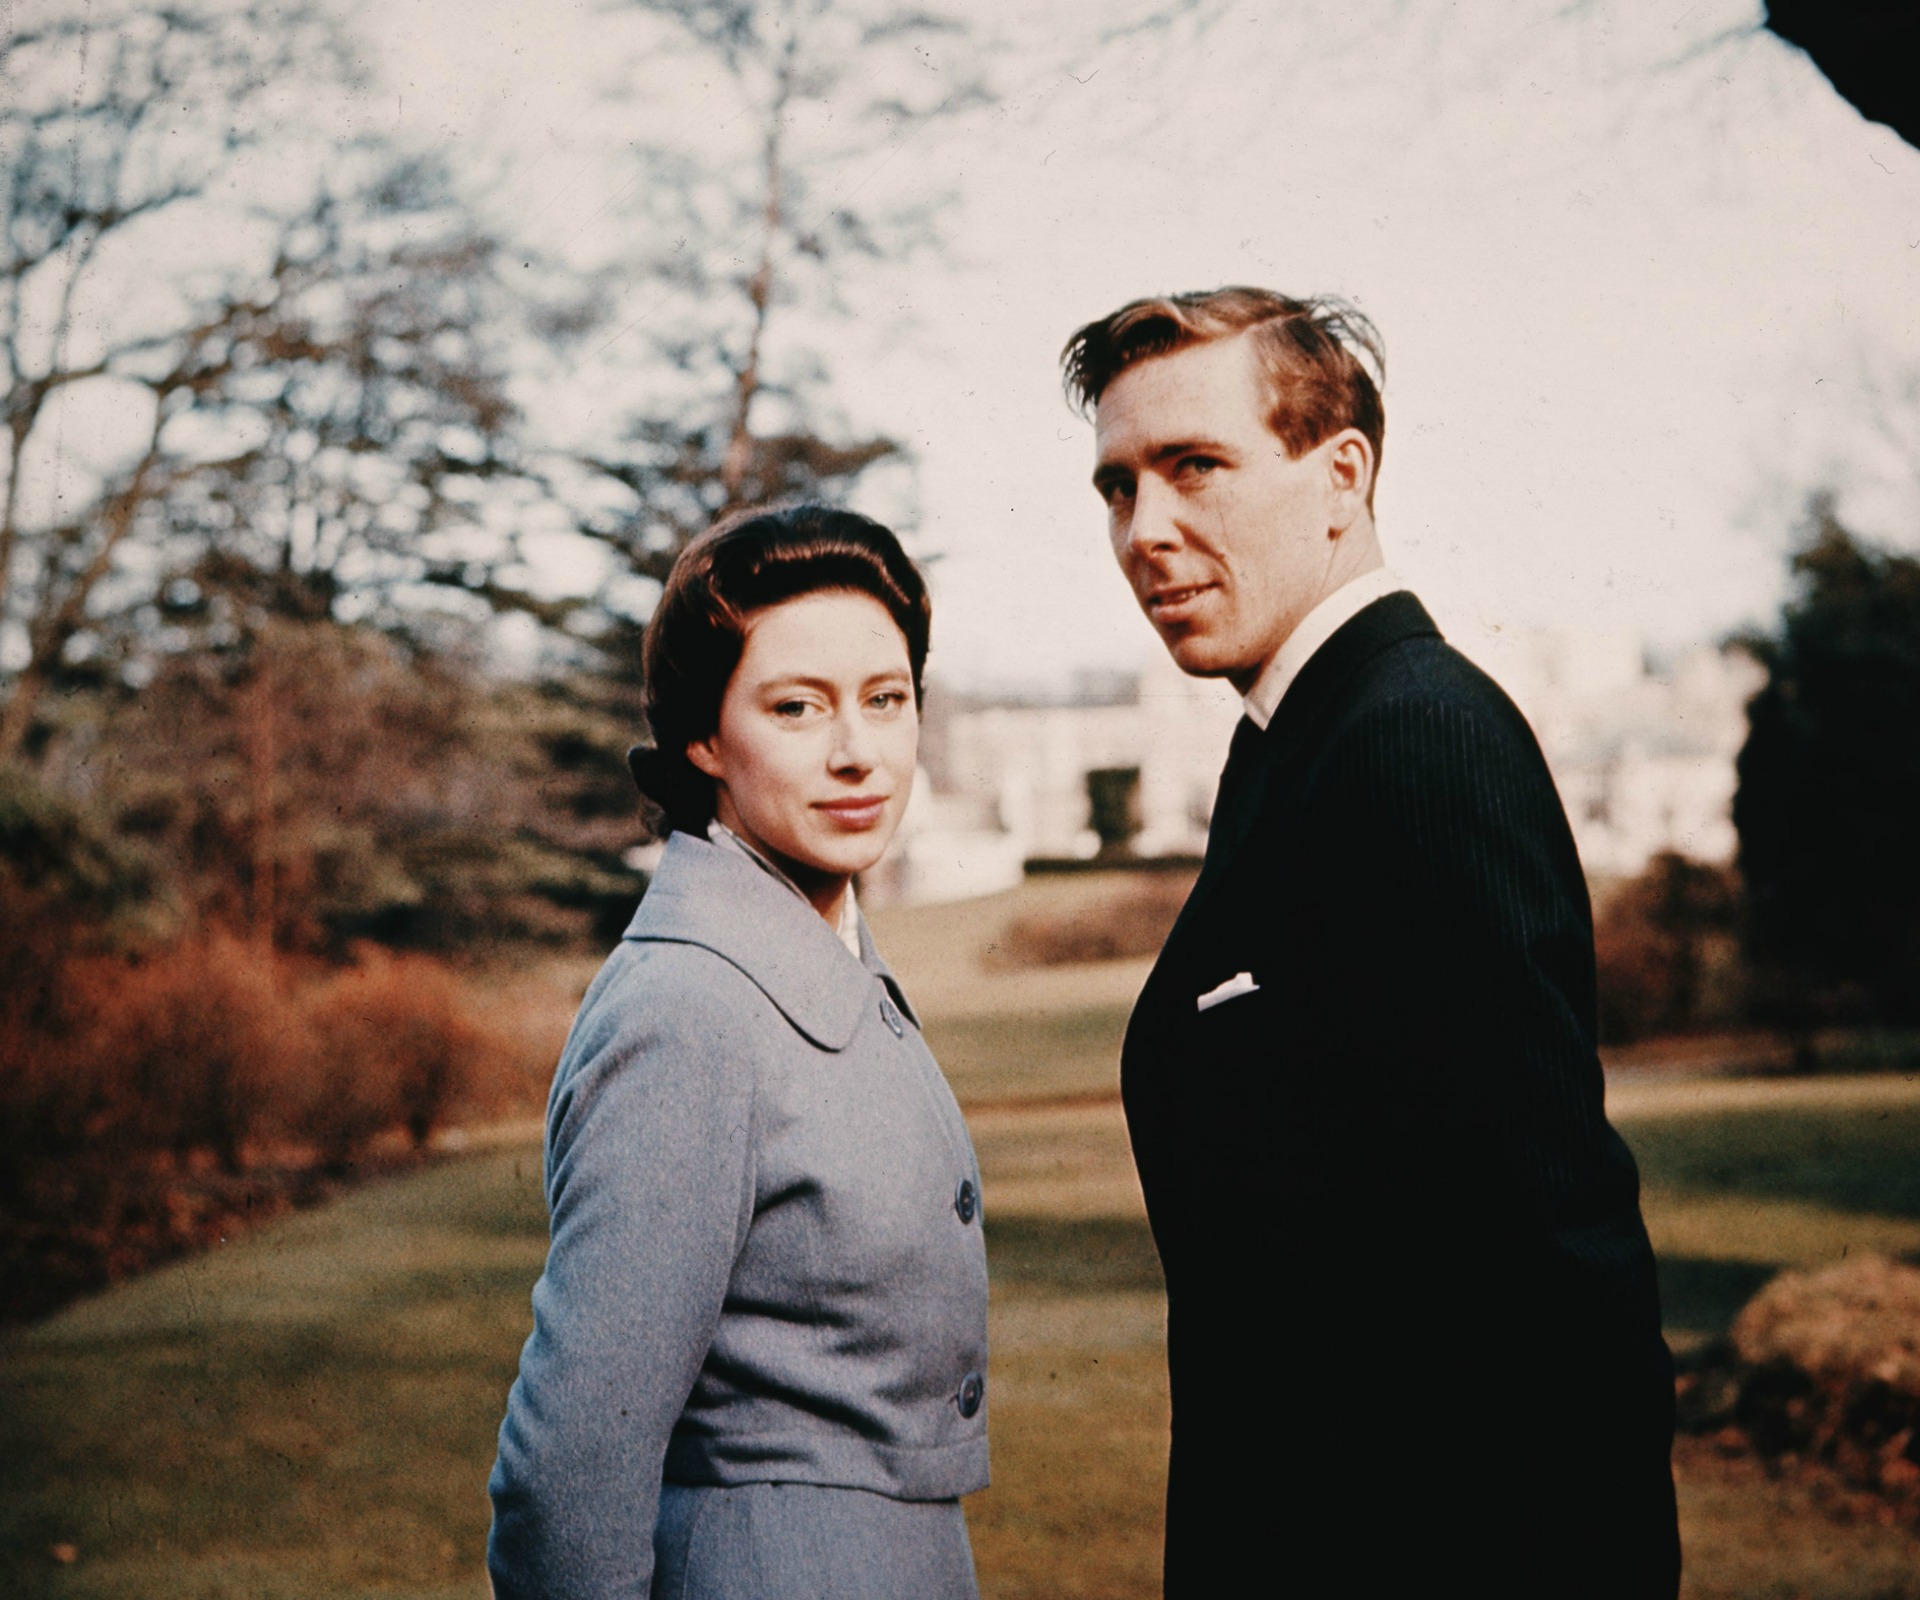 Lord Snowdon, Ex-Husband of Princess Margaret, Dies at 86